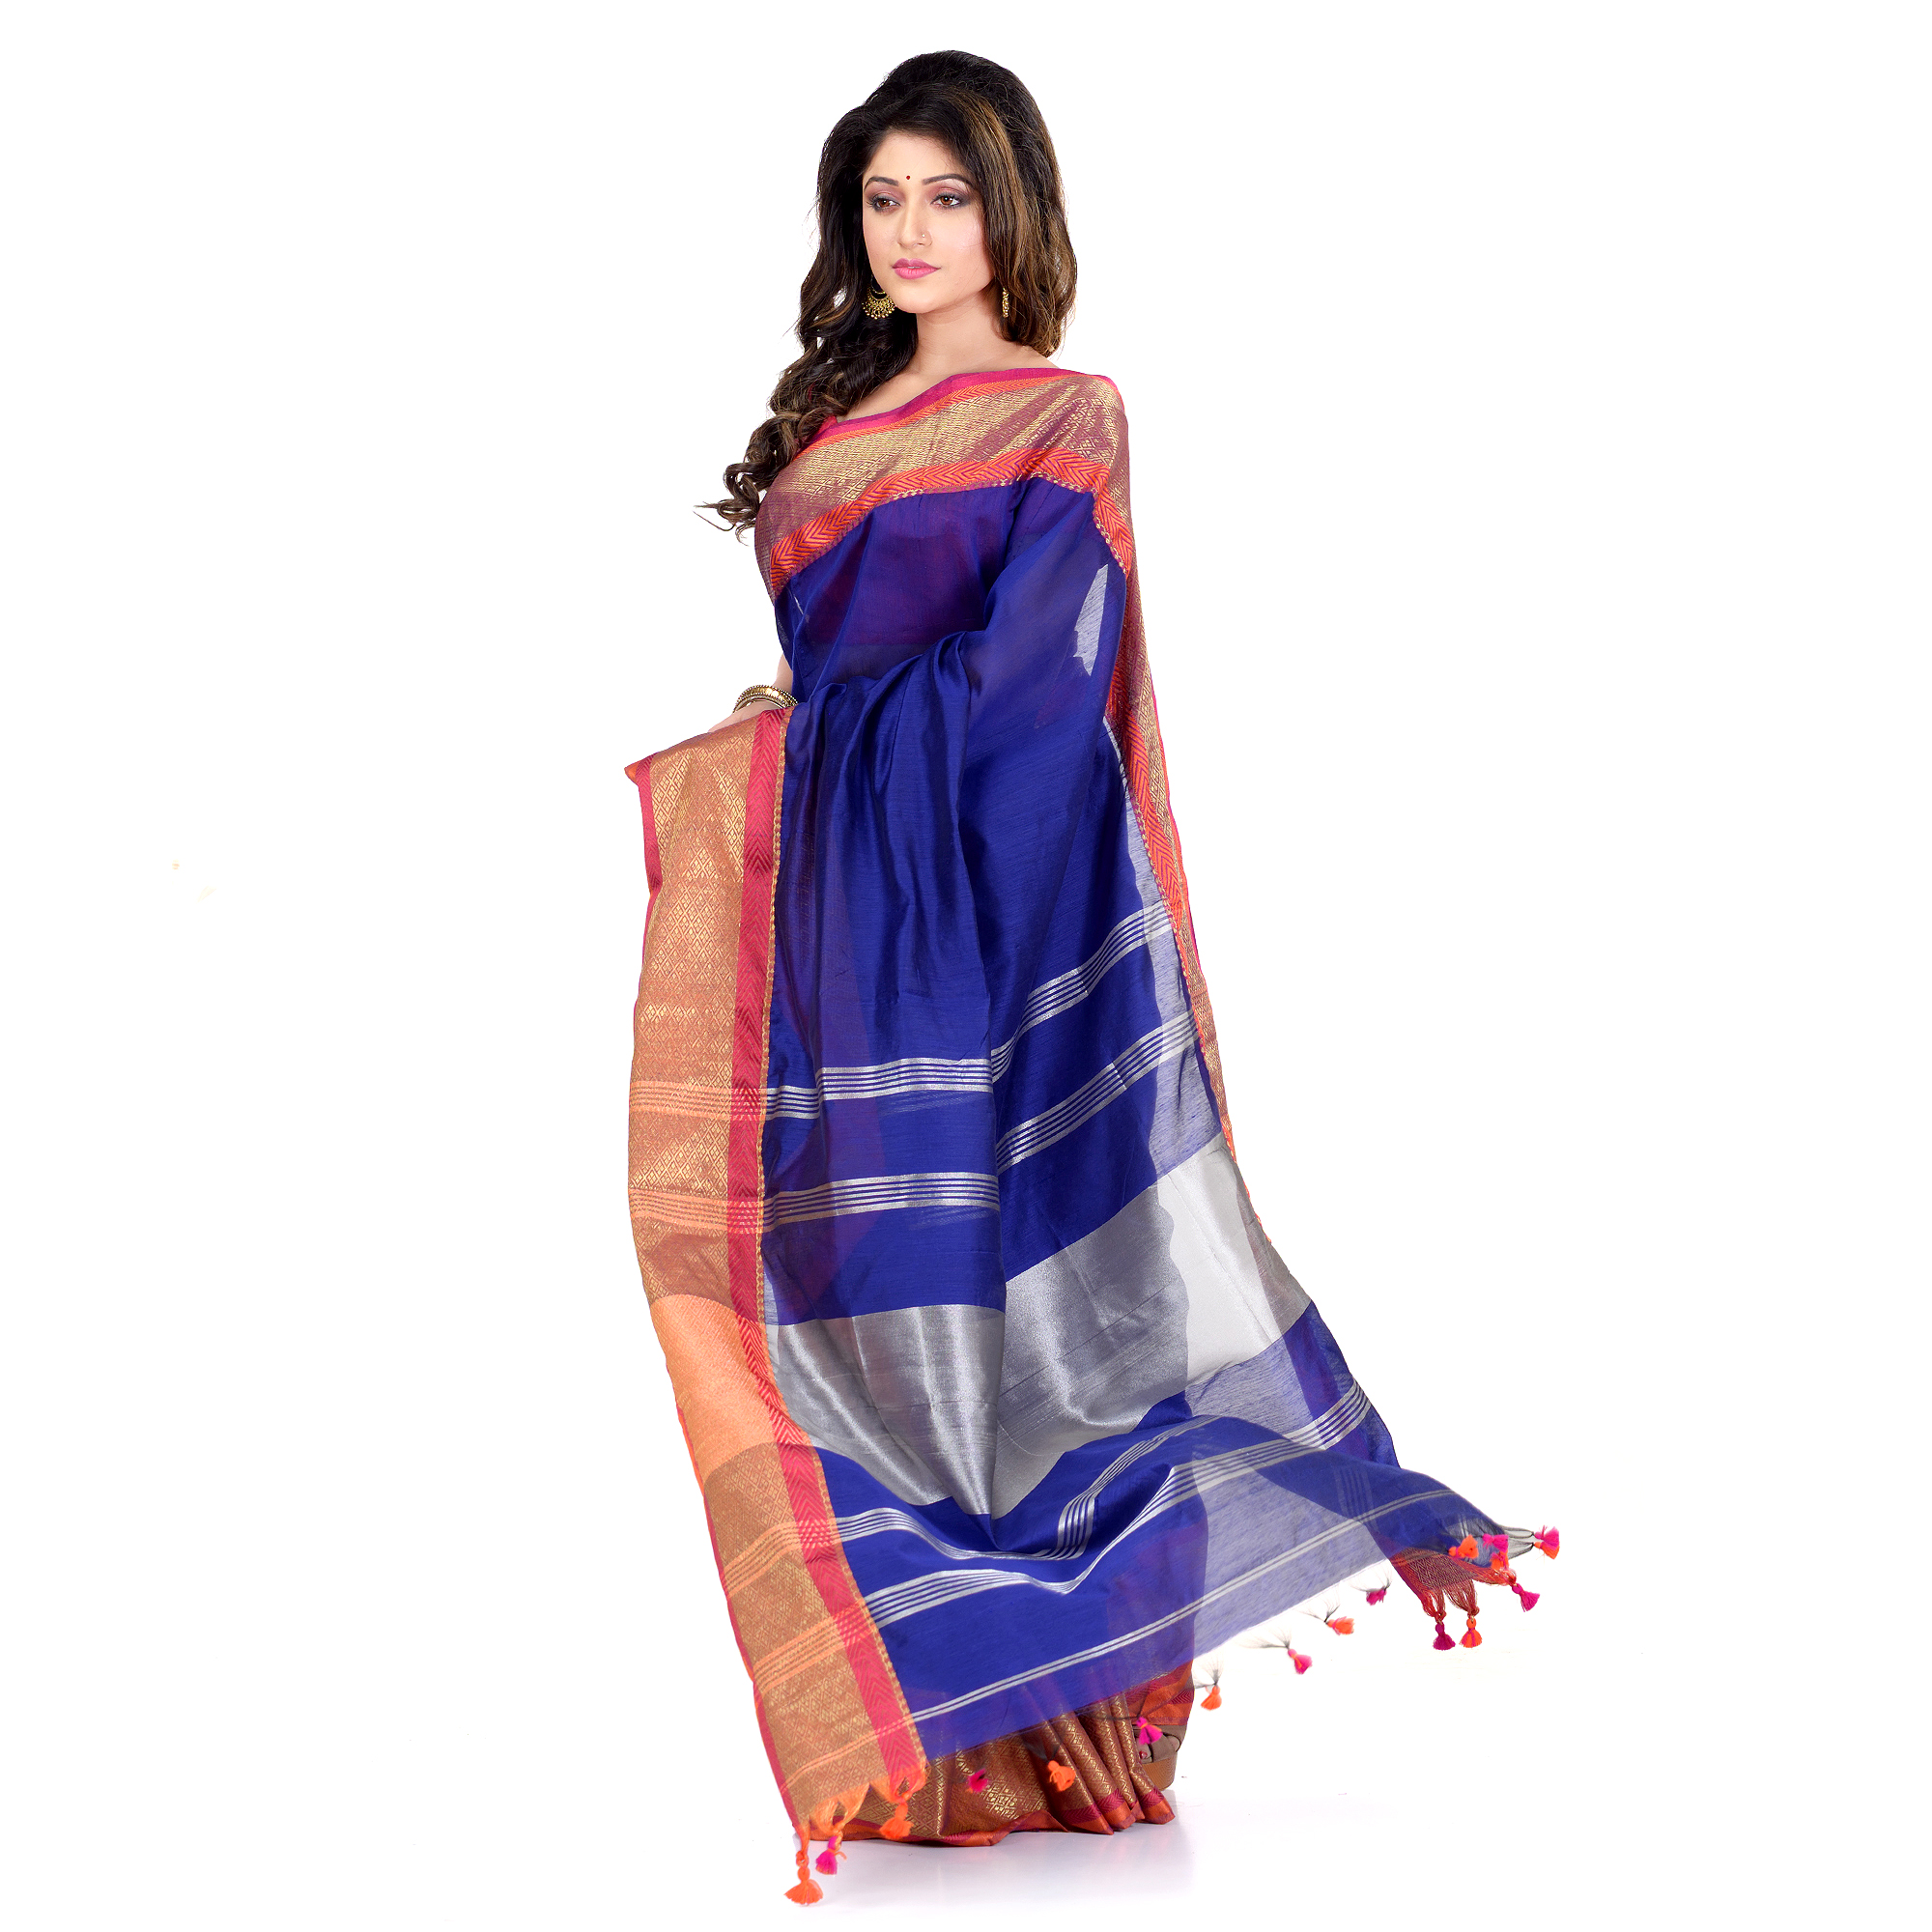 DESH BIDESH Women`s Handloom Cotton Silk Saree Jacquard Maheswari Design Zari Work With Blouse Piece(Deep Blue Silver)